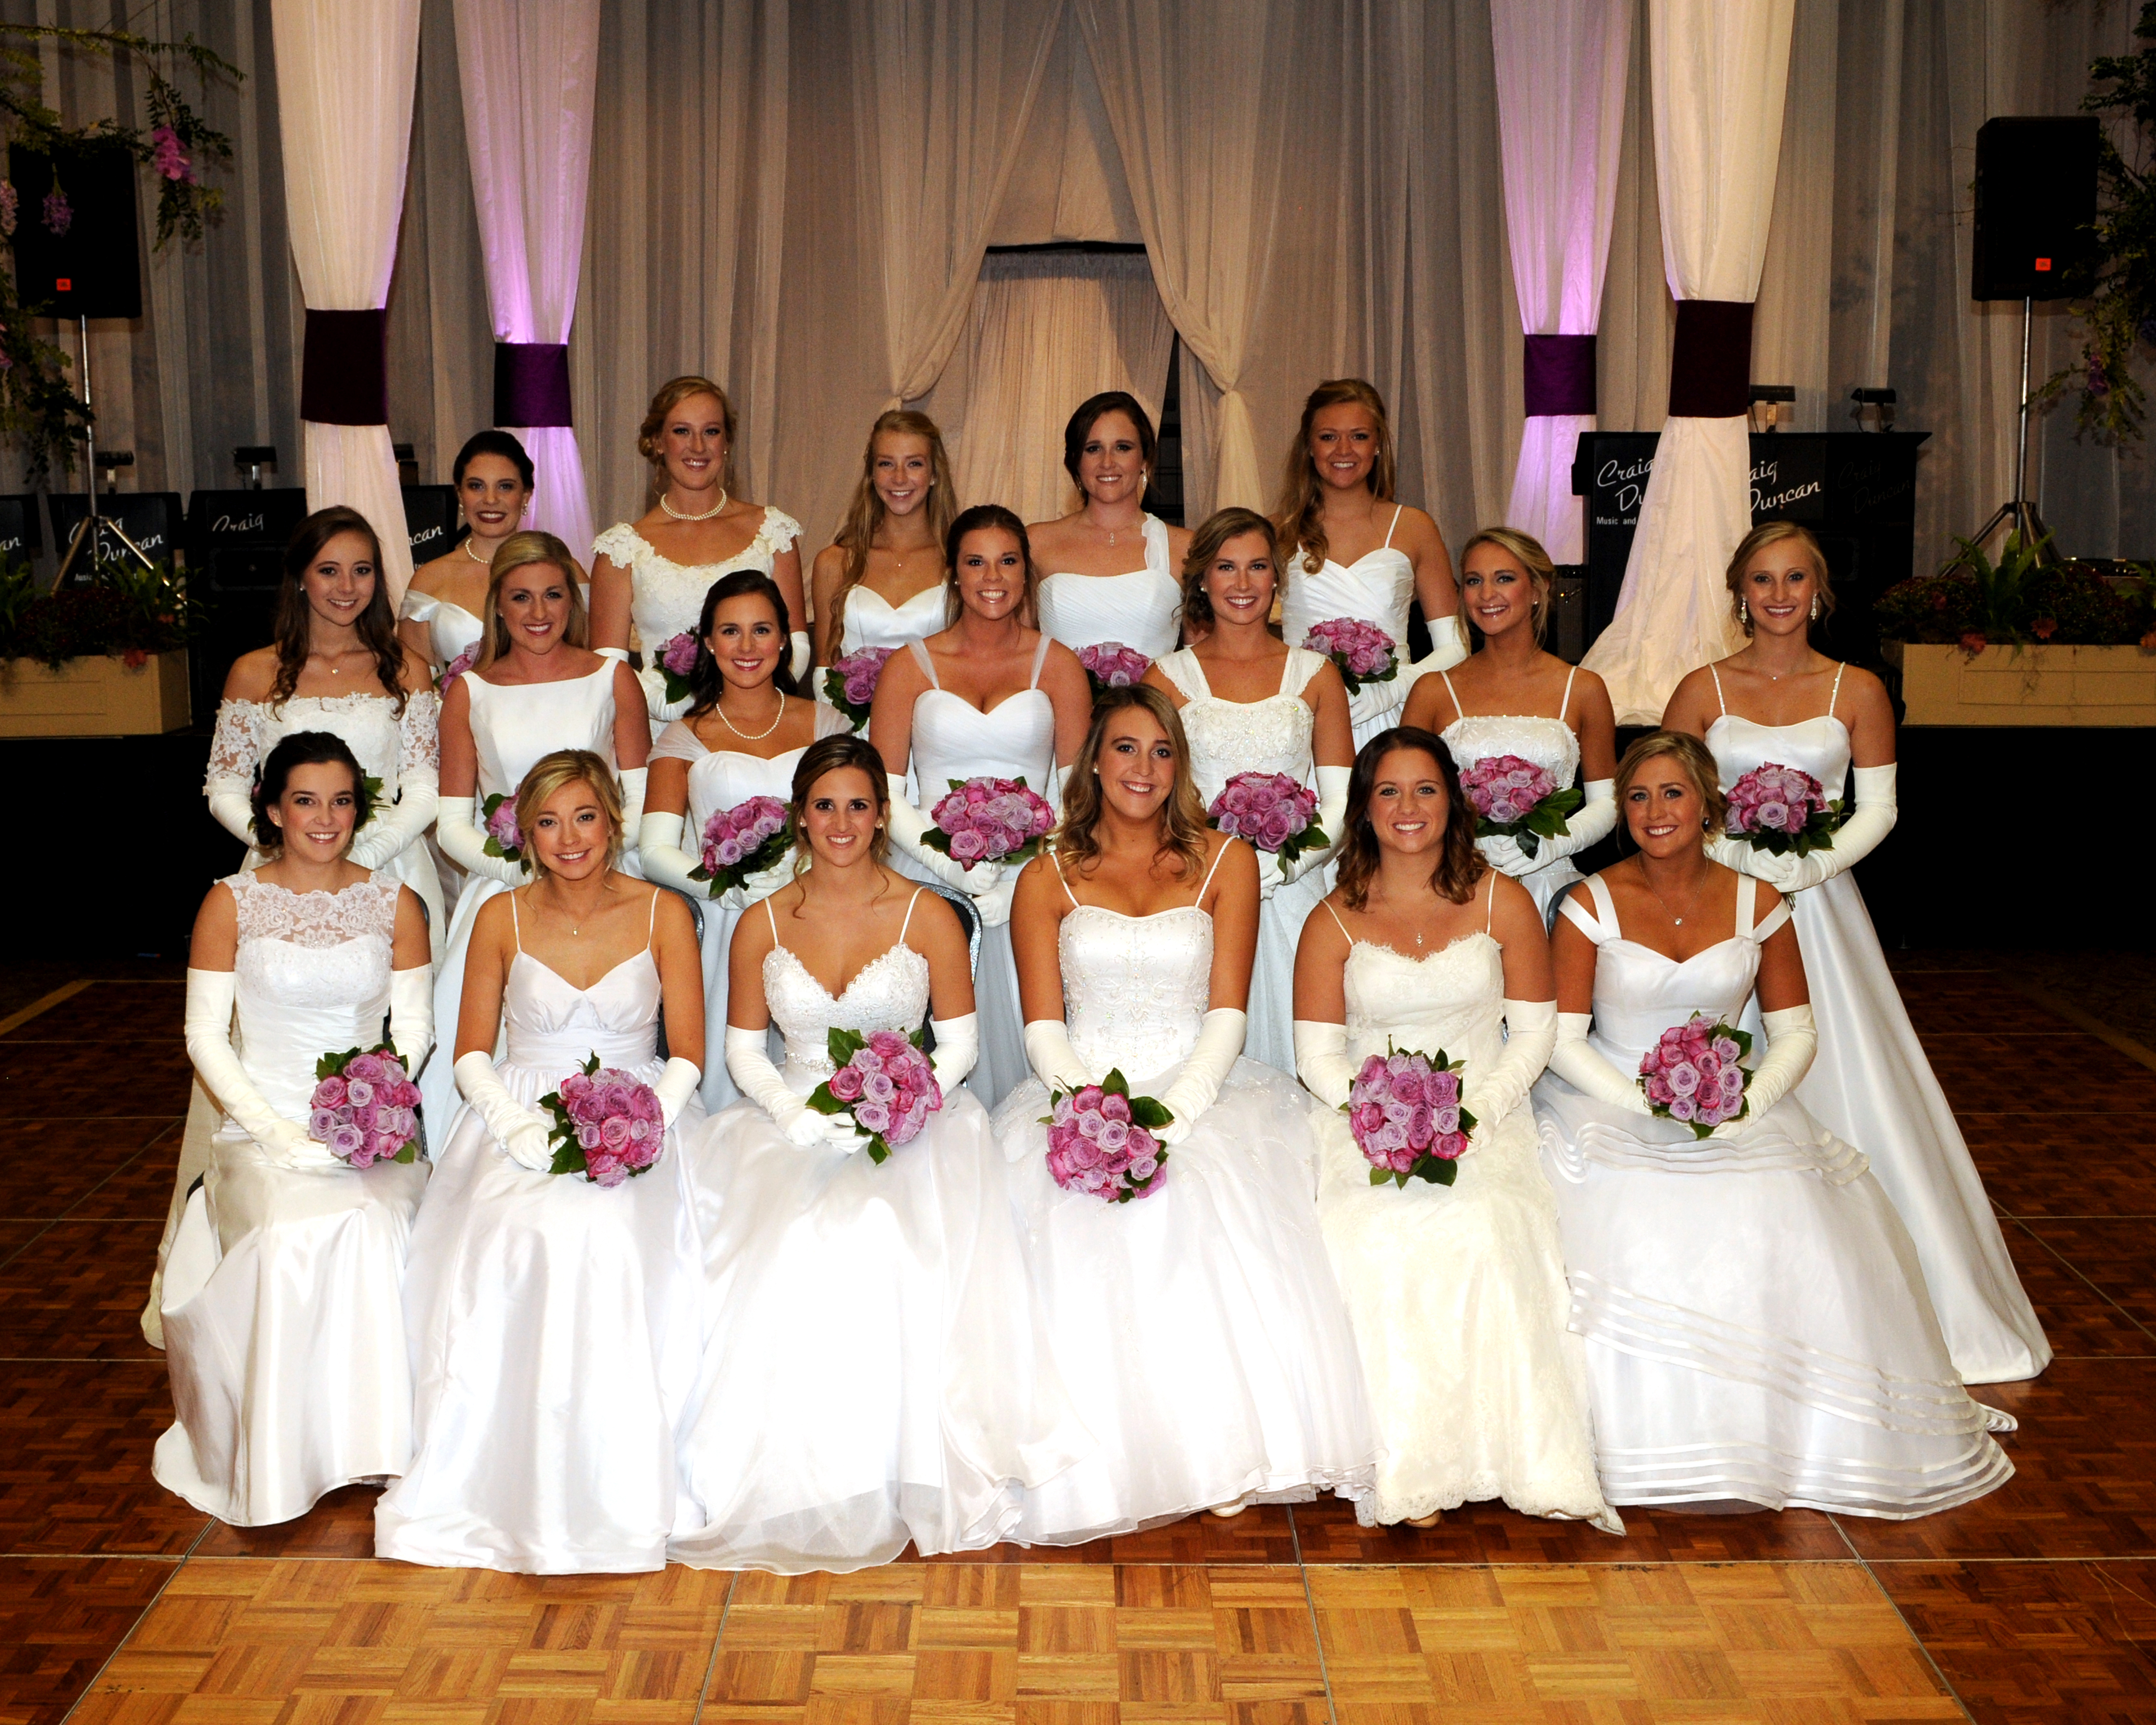 Front Row: (left to right) Ann Christian Brown, Sarah Elizabeth Moshier, Elise Marie Greco, Susan Michelle Caudle, Bailey Alexandra Bentley, Emily Adair Evans Second Row: (left to right) Kathryn Diane Griffin, Susanne Hames McCrary, Kate Noble Wheeler Hall, Karen Tindall Morring, Lauren Alexandra Neighbors, Amanda Katherine Malone, Hannah Caroline Martz Third Row: (left to right) Patton Lee Park, Harriet Rhett Crosby, Lily Madeleine Hendrix, Peyton Ann Mickle, Hannah Leigh Splawn